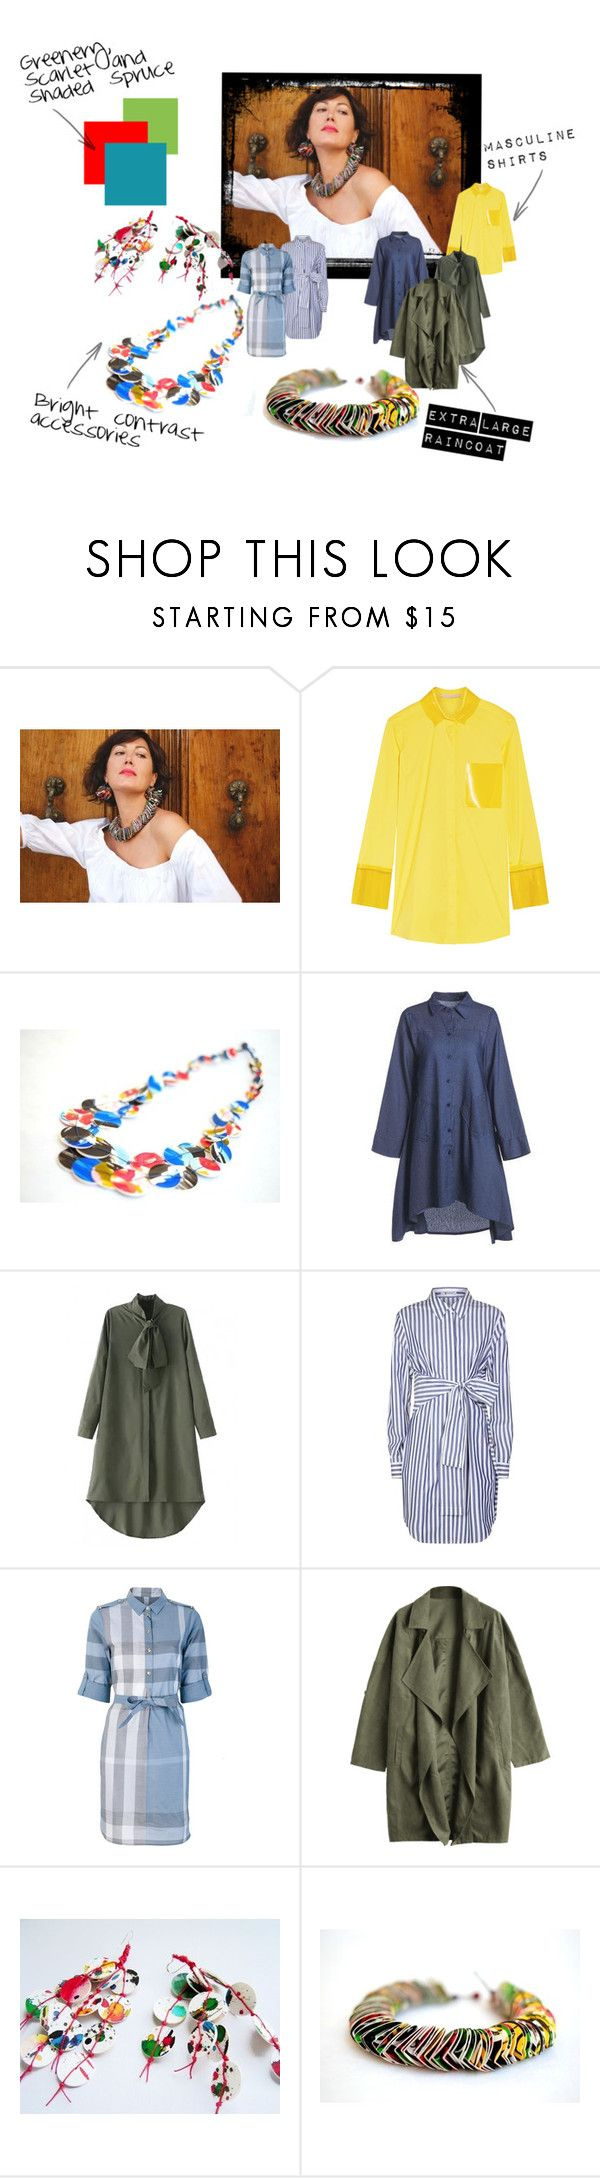 """""""Fall 2017 Trends"""" by renterodesigns on Polyvore featuring moda, Christopher Kane, WithChic, T By Alexander Wang y Burberry"""